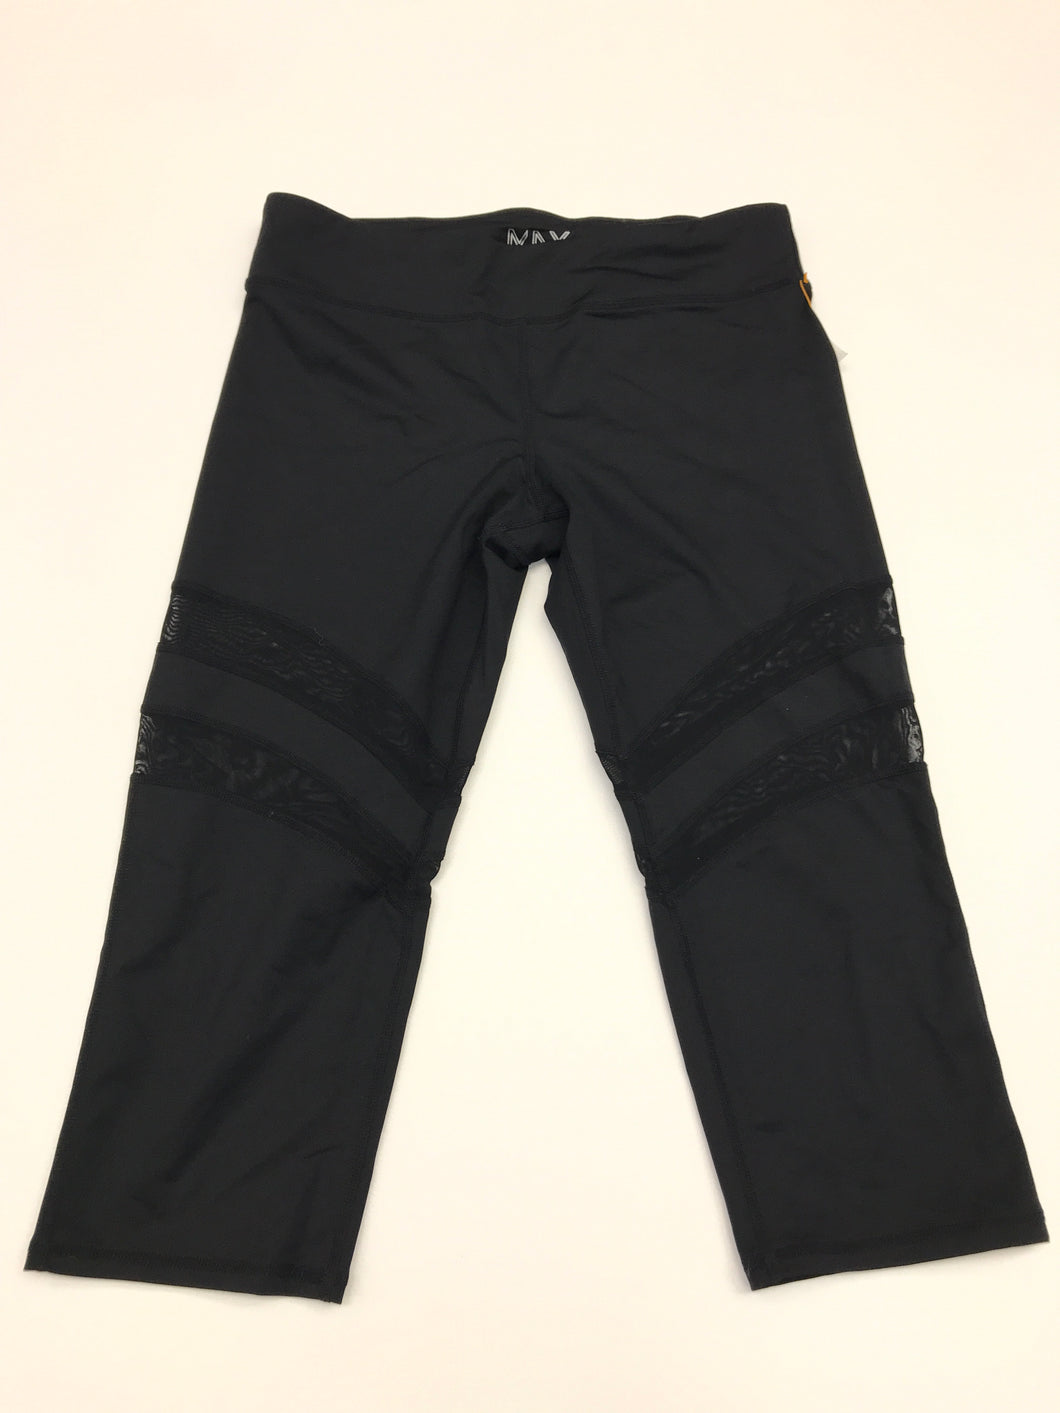 Womens Athletic Pants Size Large